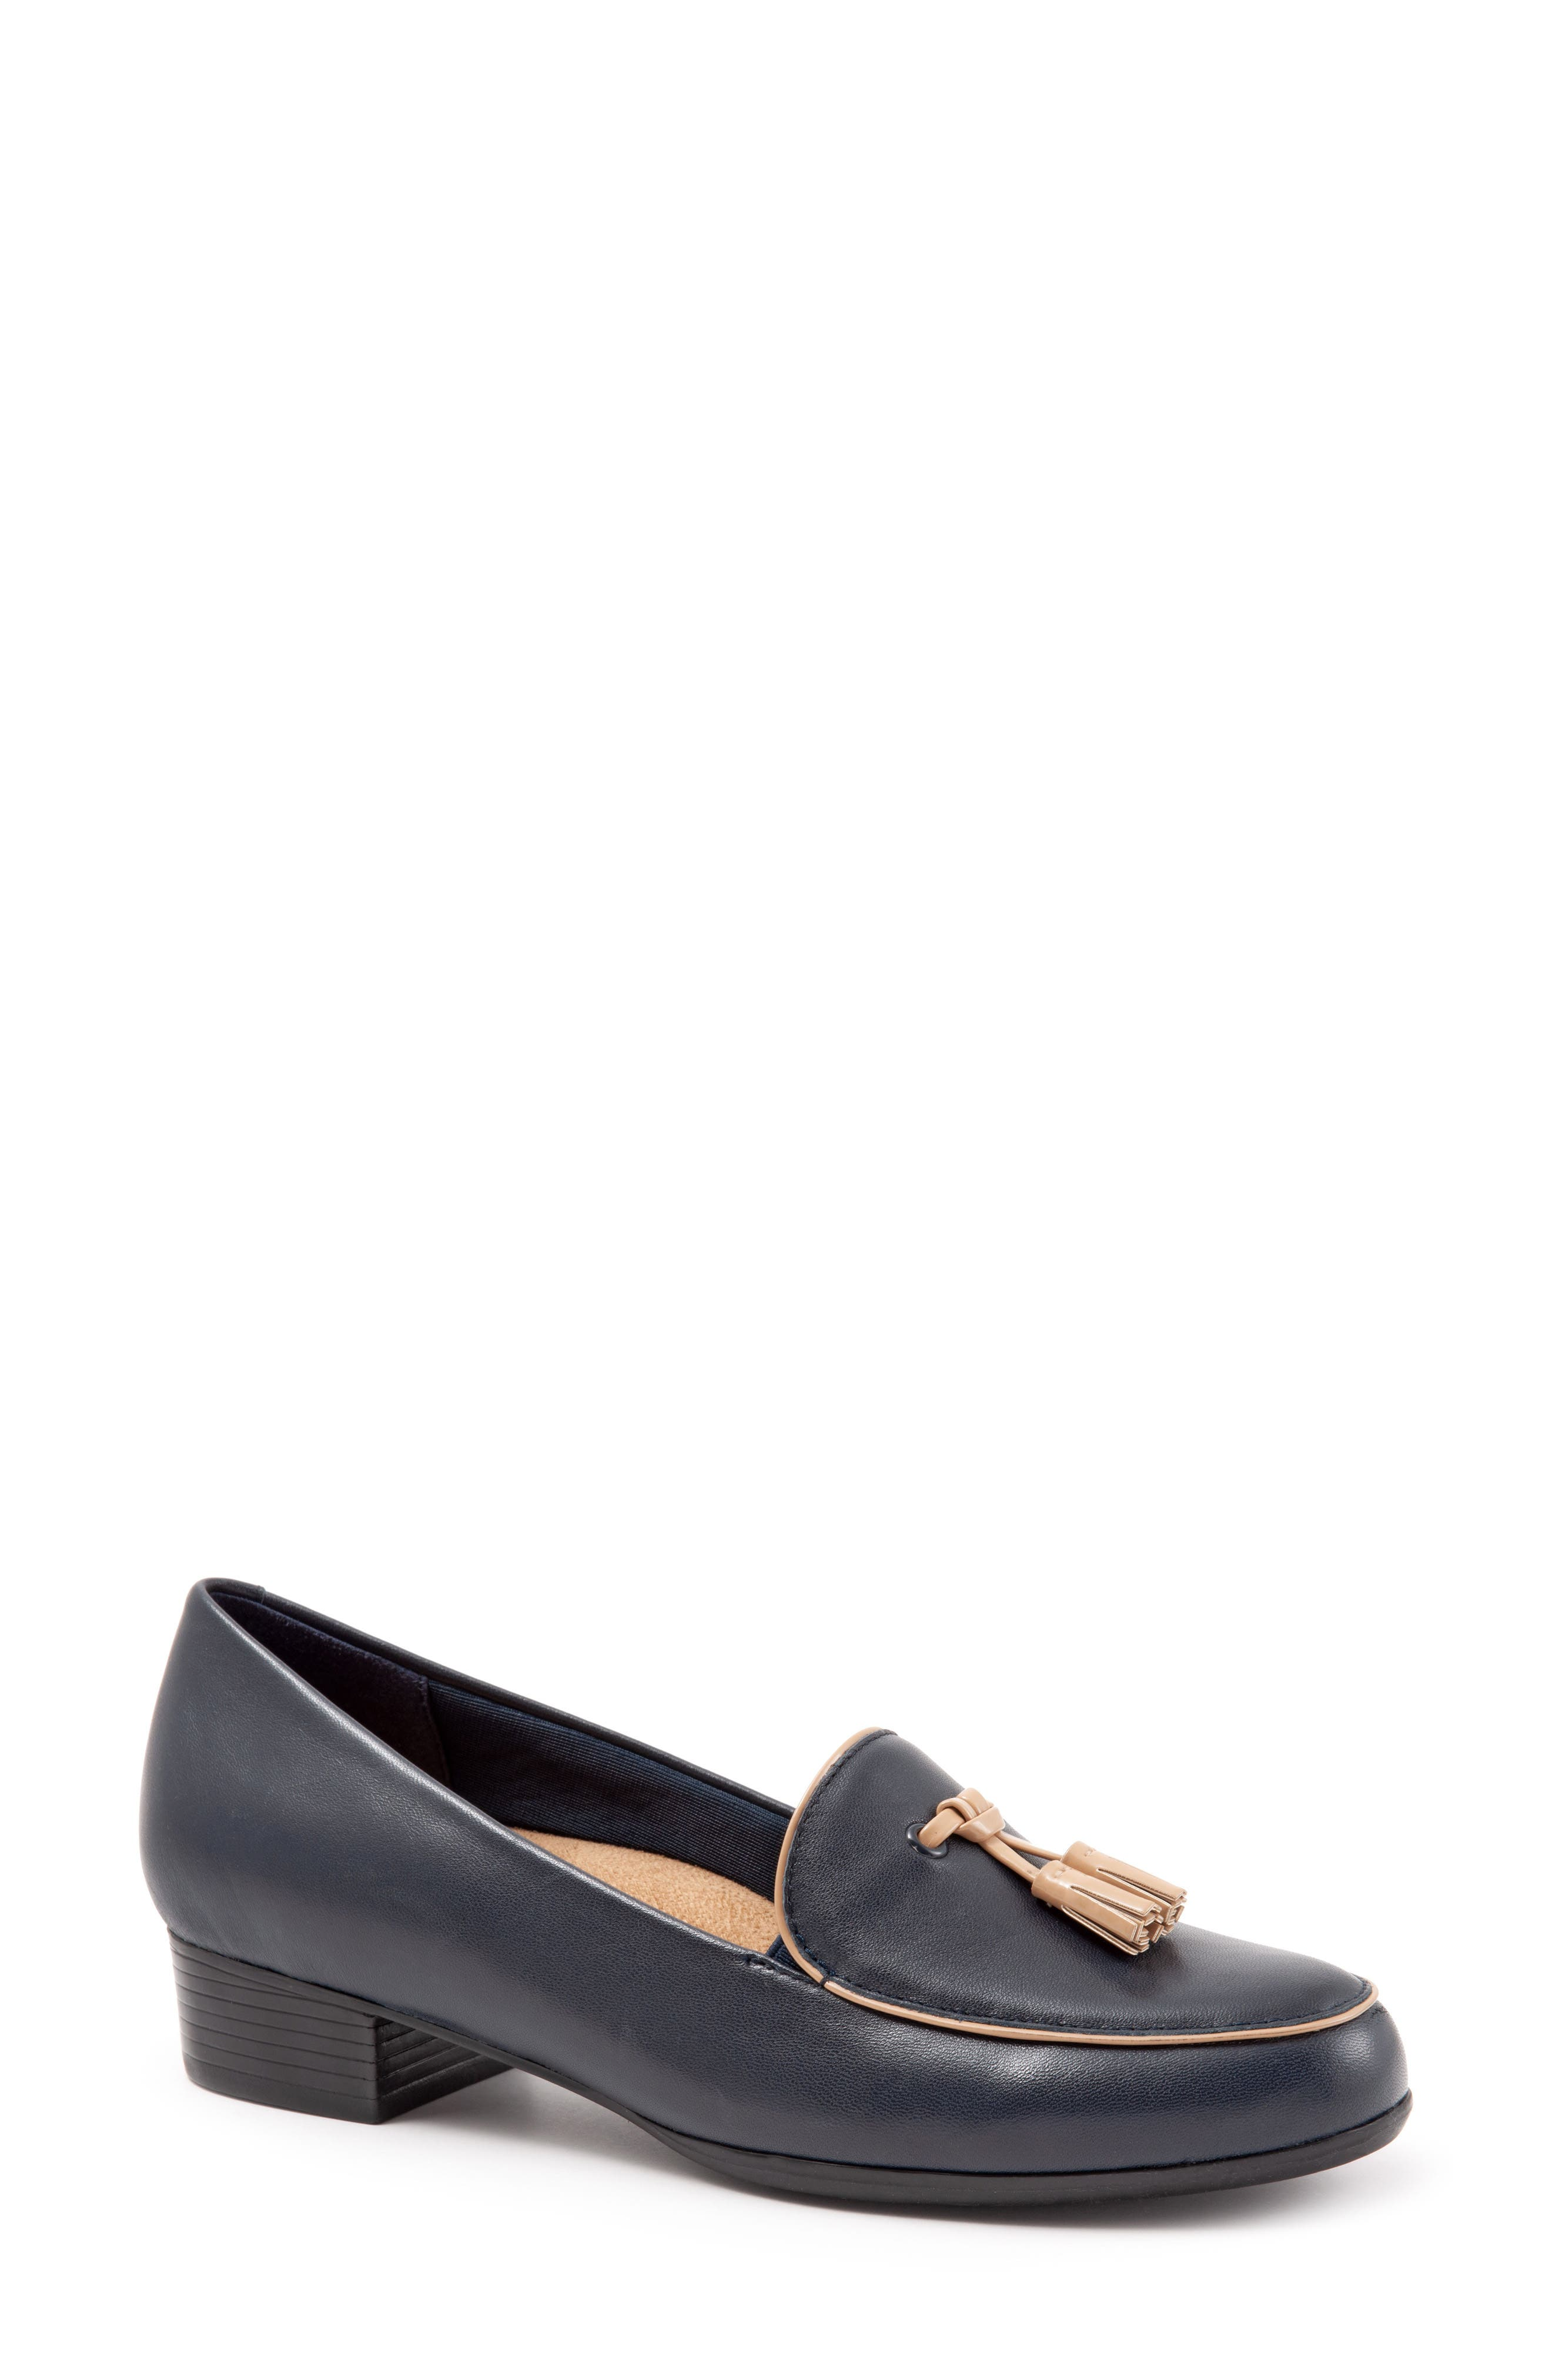 TROTTERS,                             Mary Tassel Loafer,                             Main thumbnail 1, color,                             NAVY LEATHER